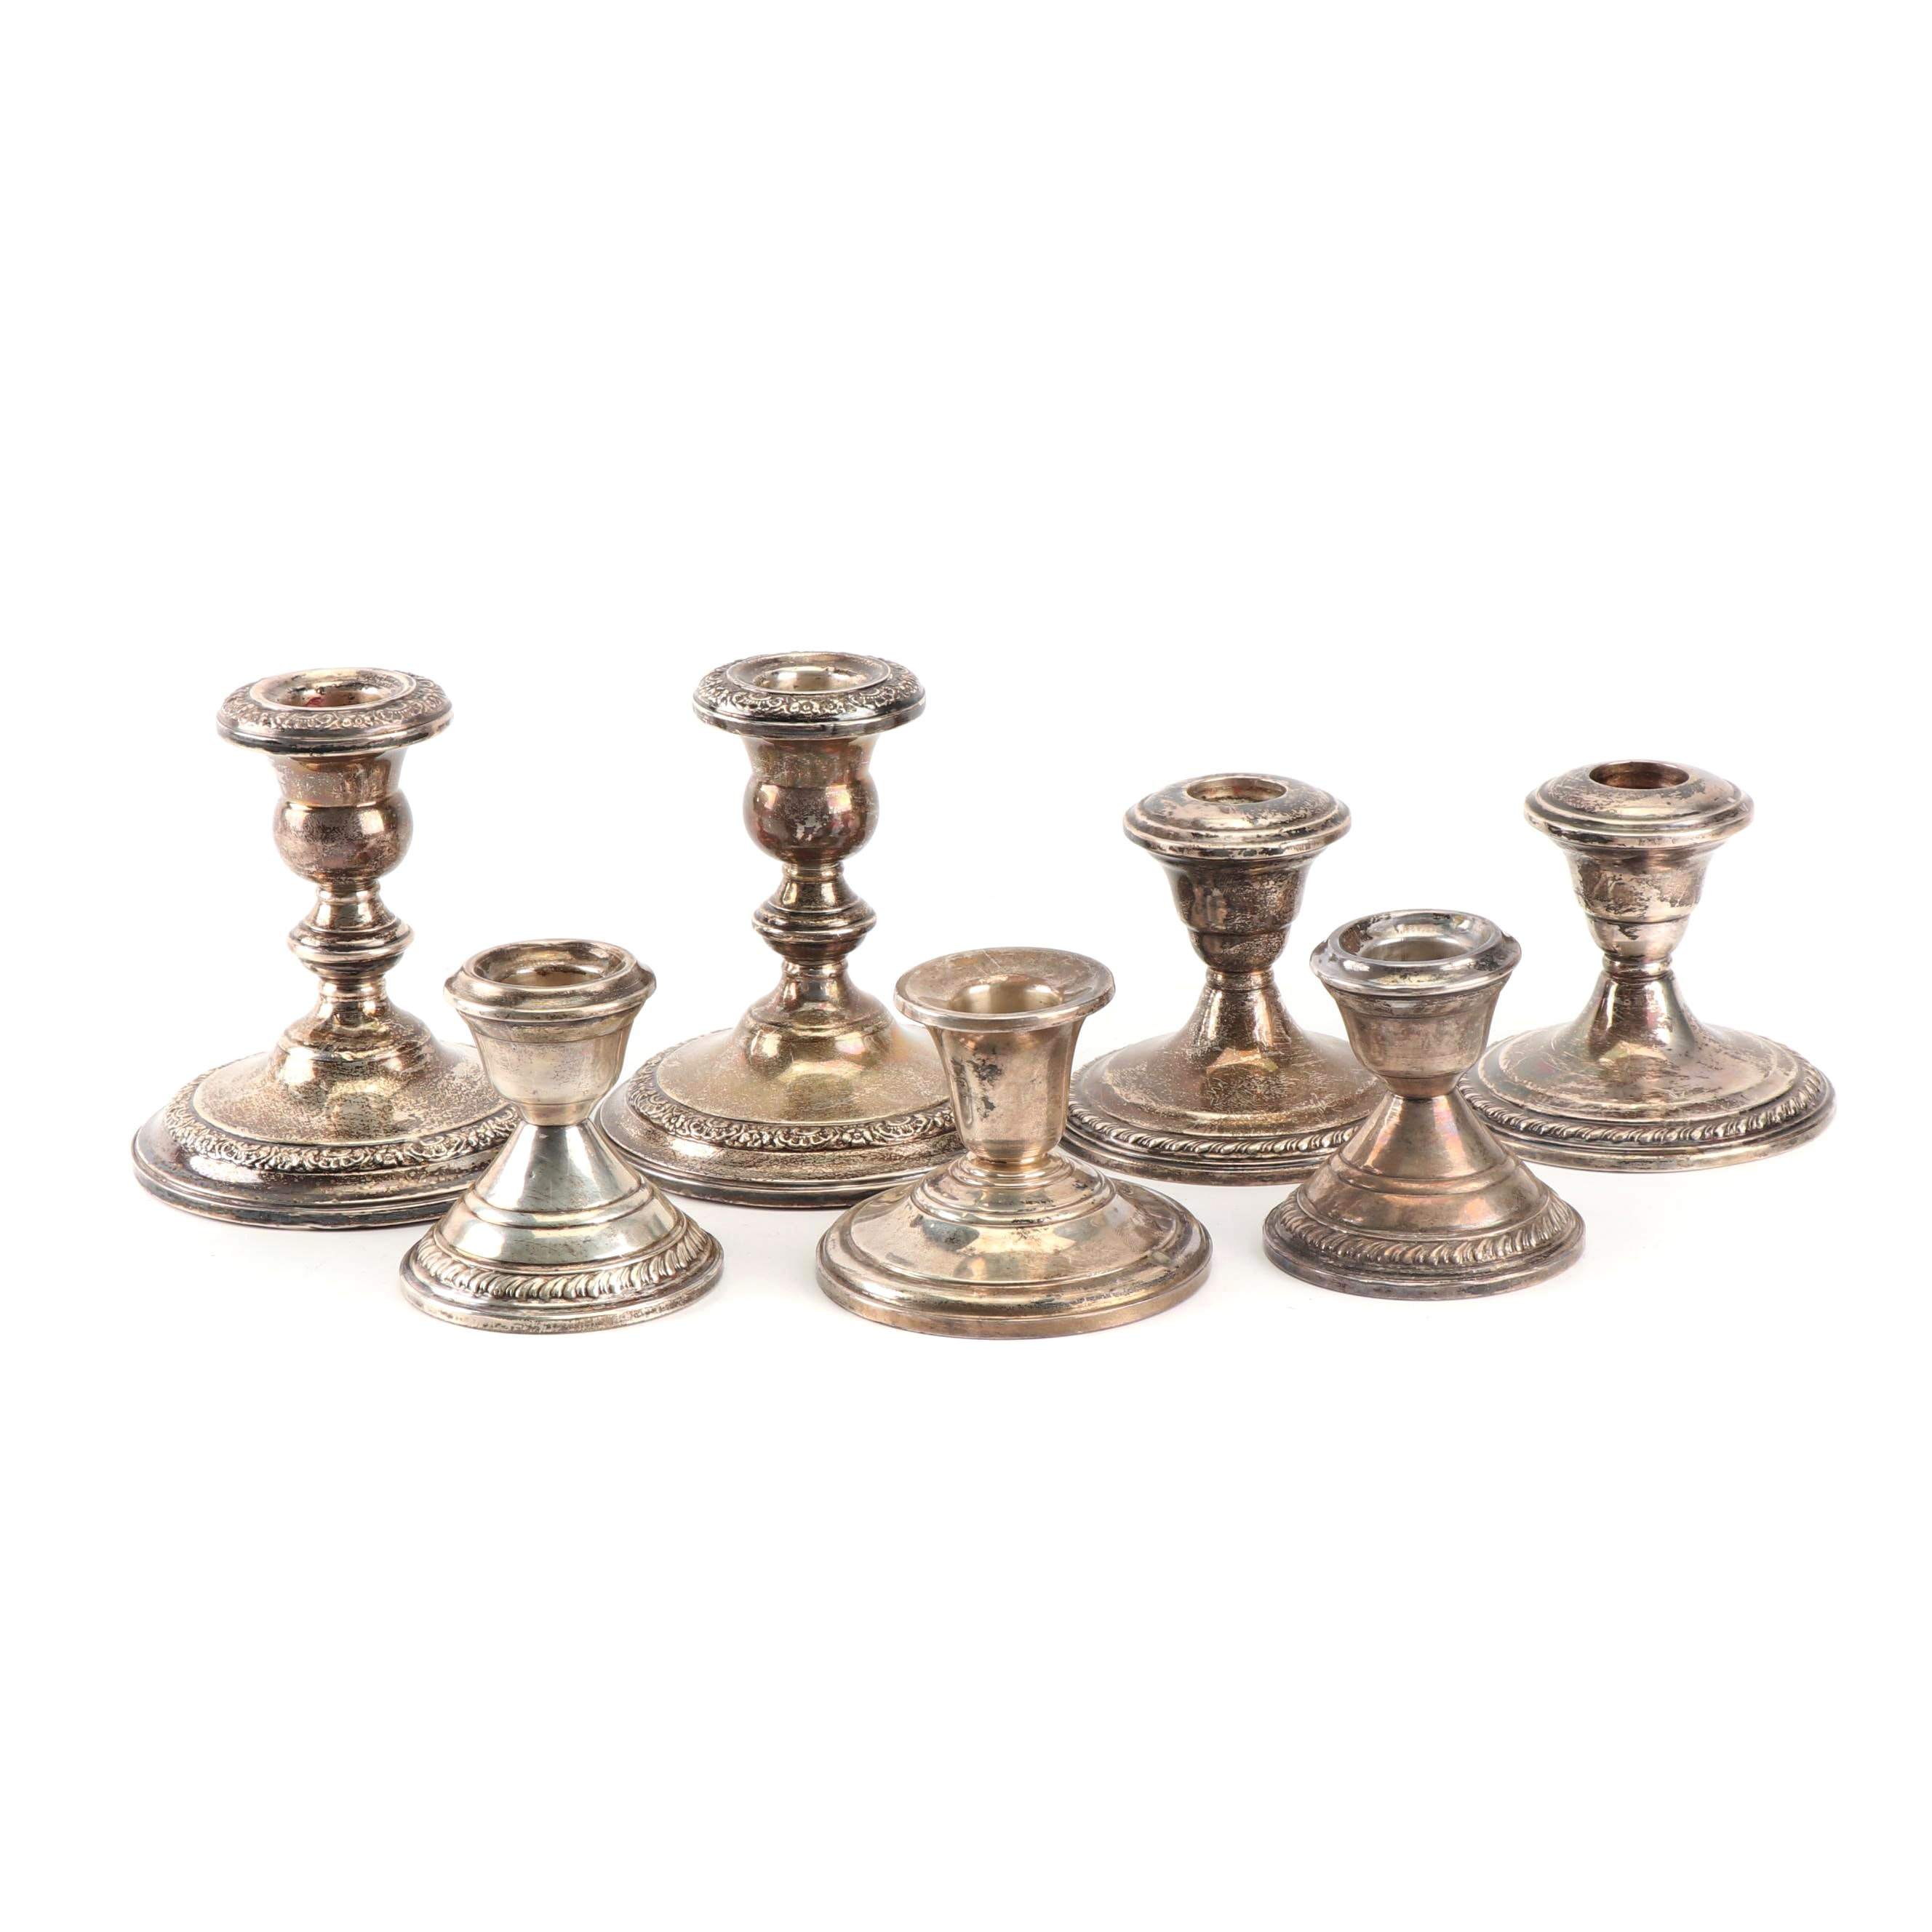 Weighted Sterling Candleholders featuring Amston, La Pierre and Frank M. Whiting